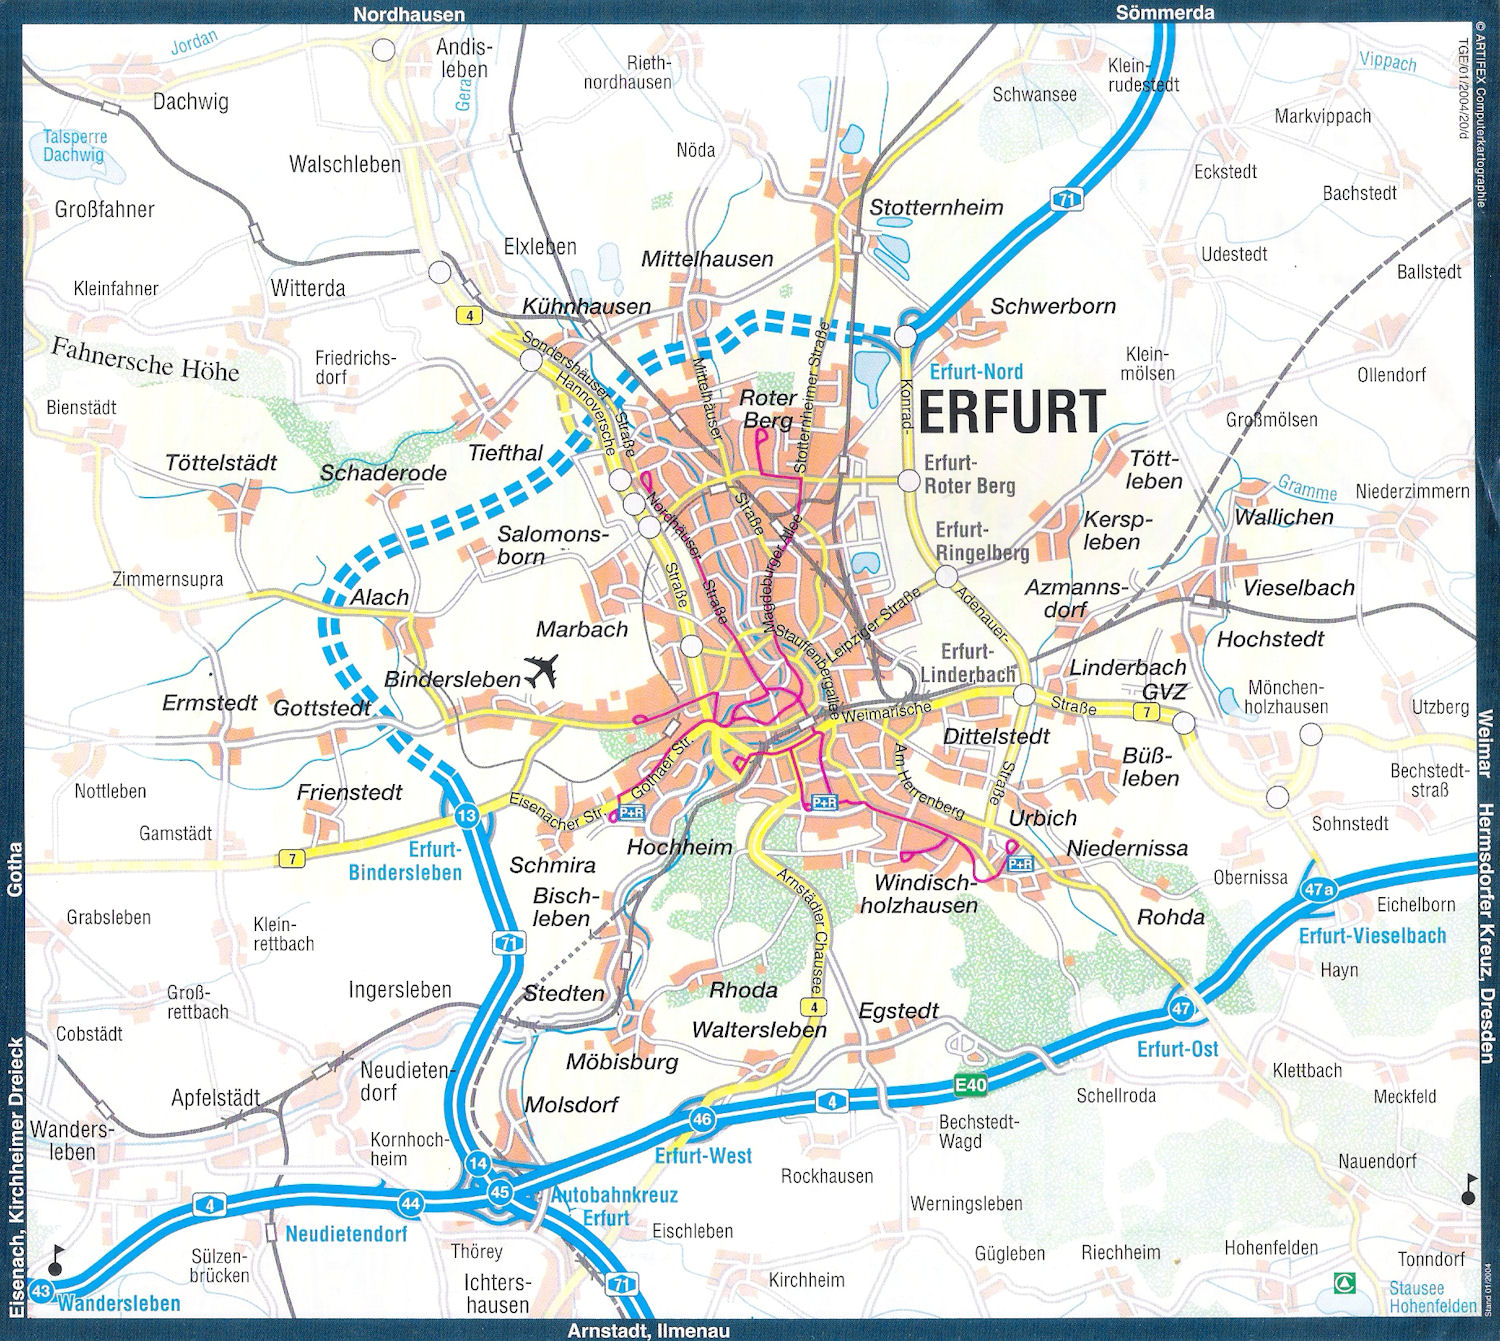 Guide to Bach Tour Erfurt Maps